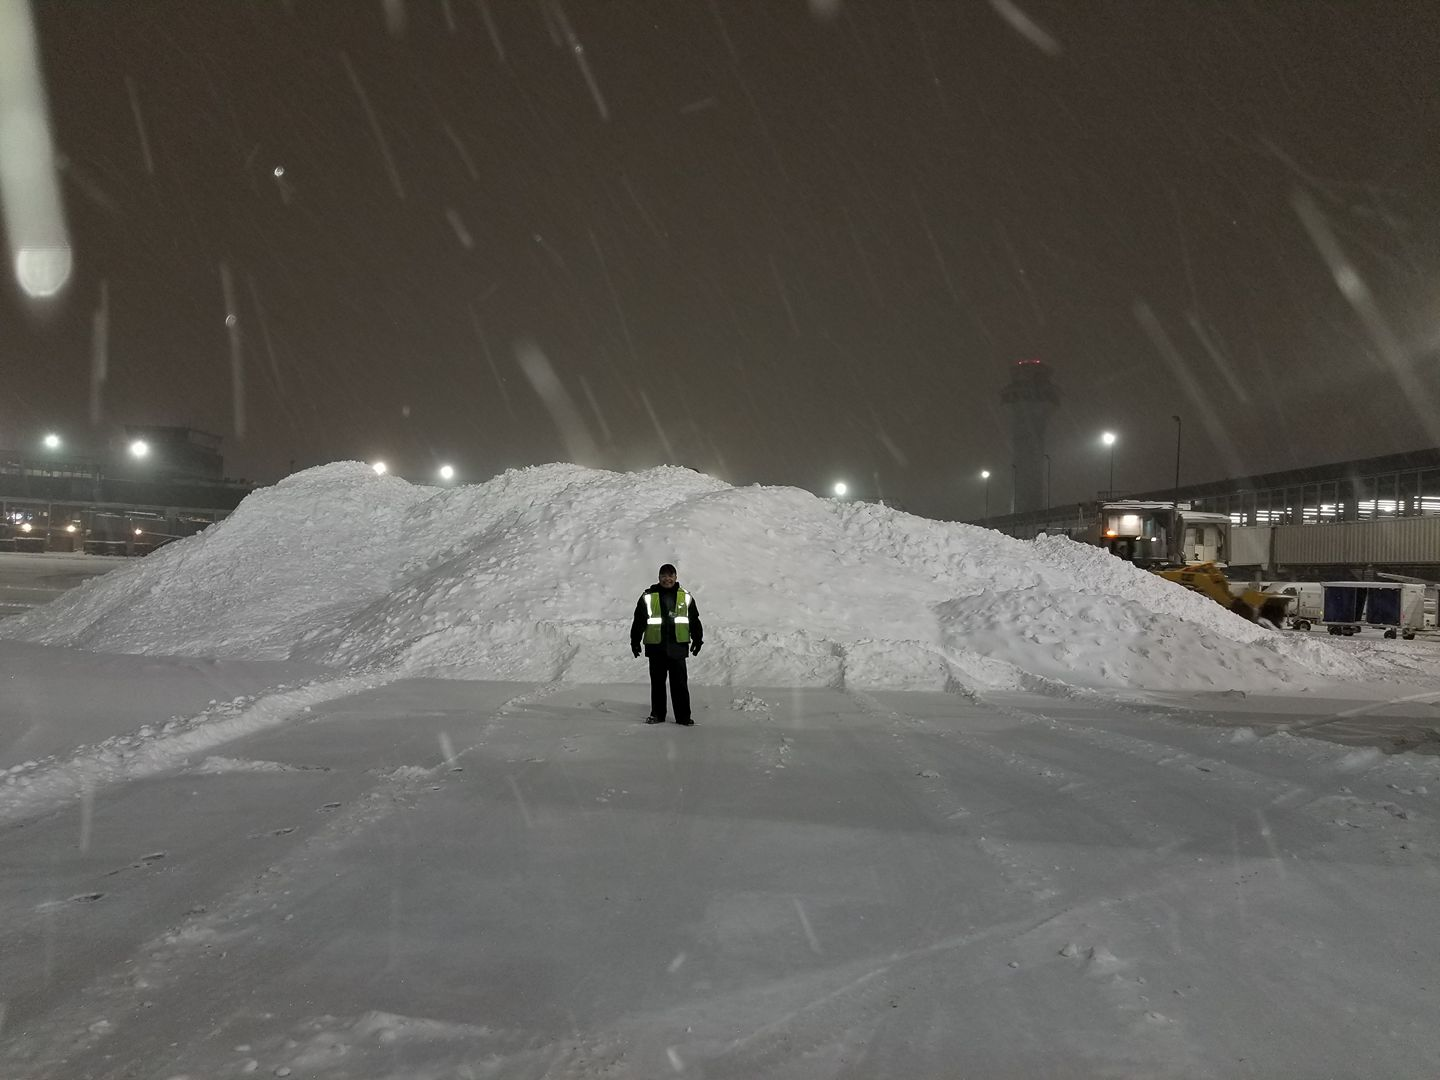 <div class='meta'><div class='origin-logo' data-origin='WLS'></div><span class='caption-text' data-credit='Mike Gonzalez'>A snow pile at O'Hare</span></div>